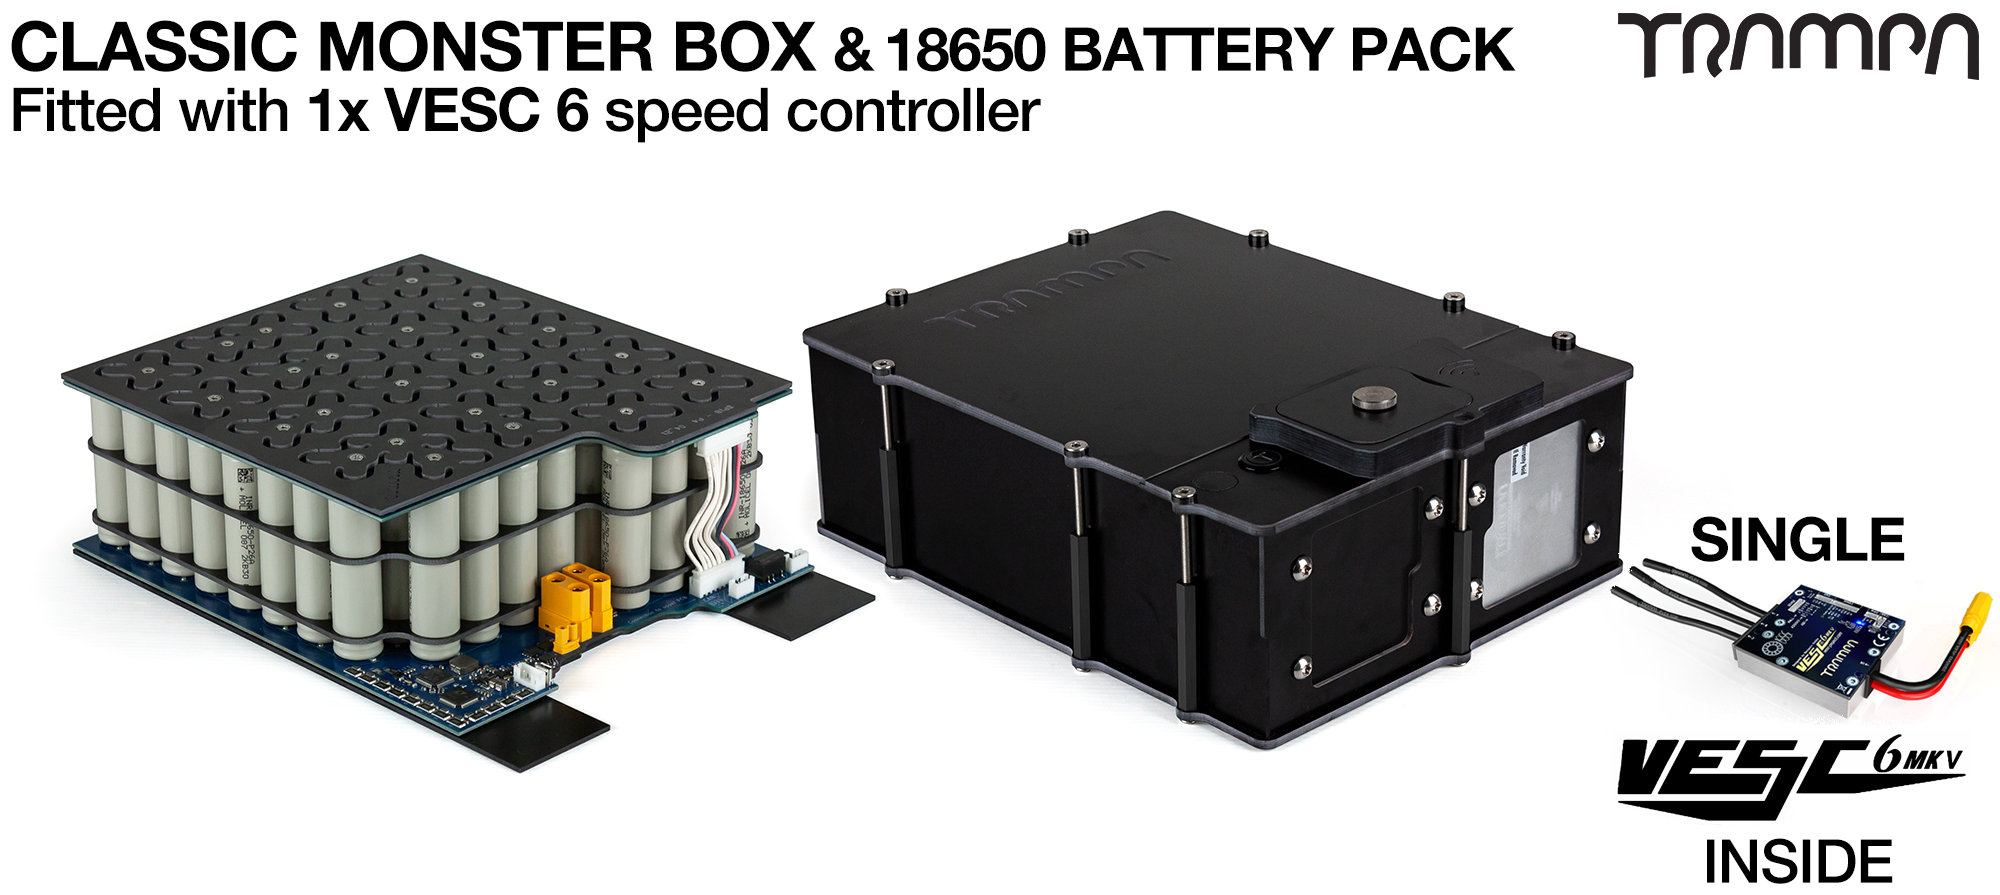 Classic MONSTER Box MkIV - with 18650 PCB Pack, 1x VESC 6 with NRF & 84x 18650 cells 12s7p 21Ah - PCB based Battery Pack with Integrated Battery Management System (BMS) - UK CUSTOMERS ONLY